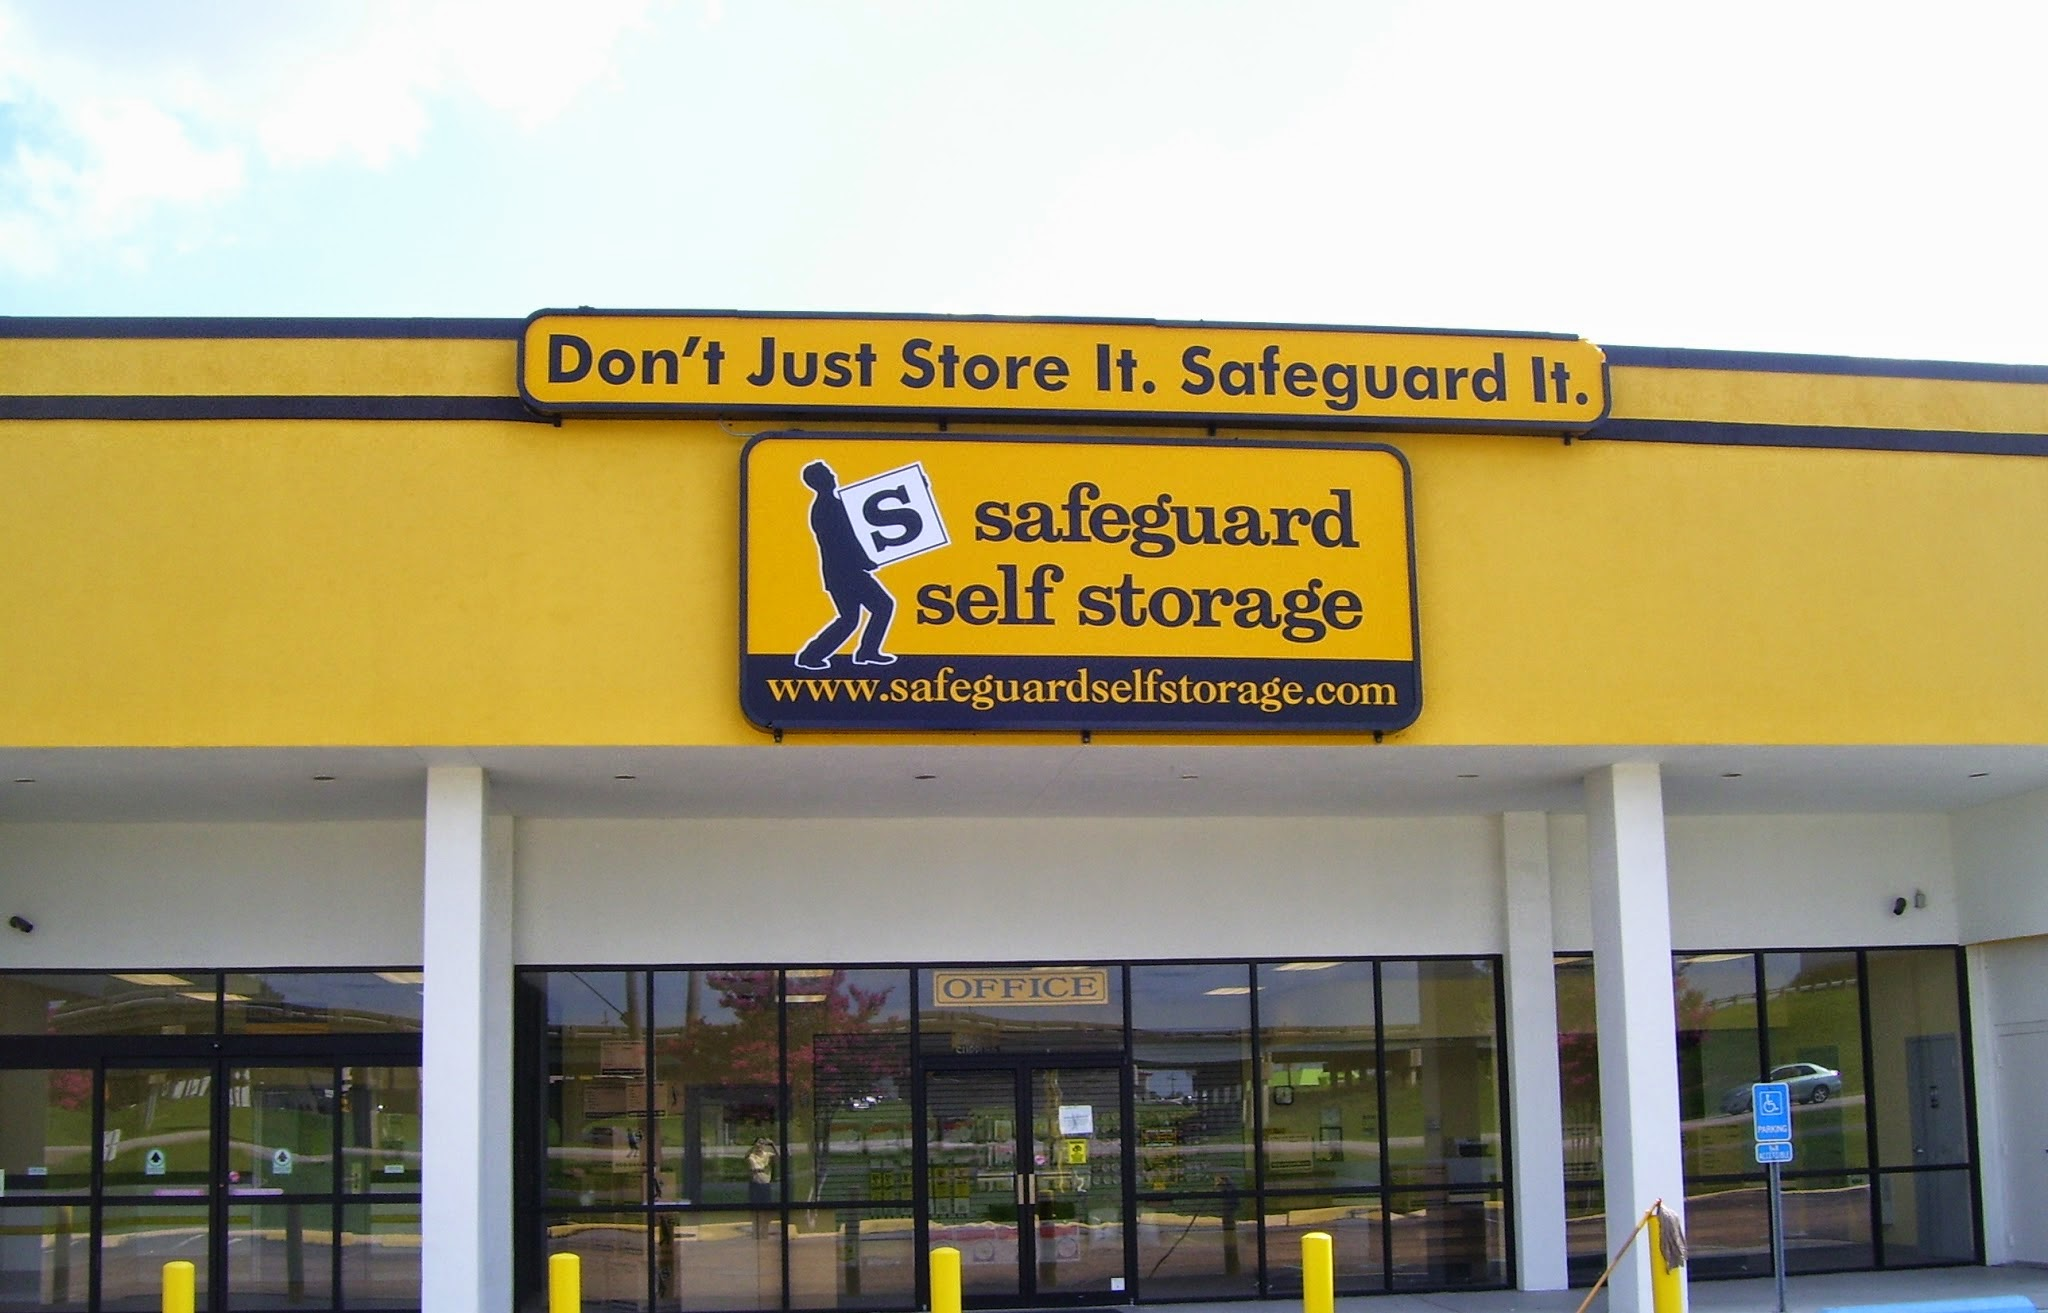 Safeguard Self Storage In Baton Rouge La 70809